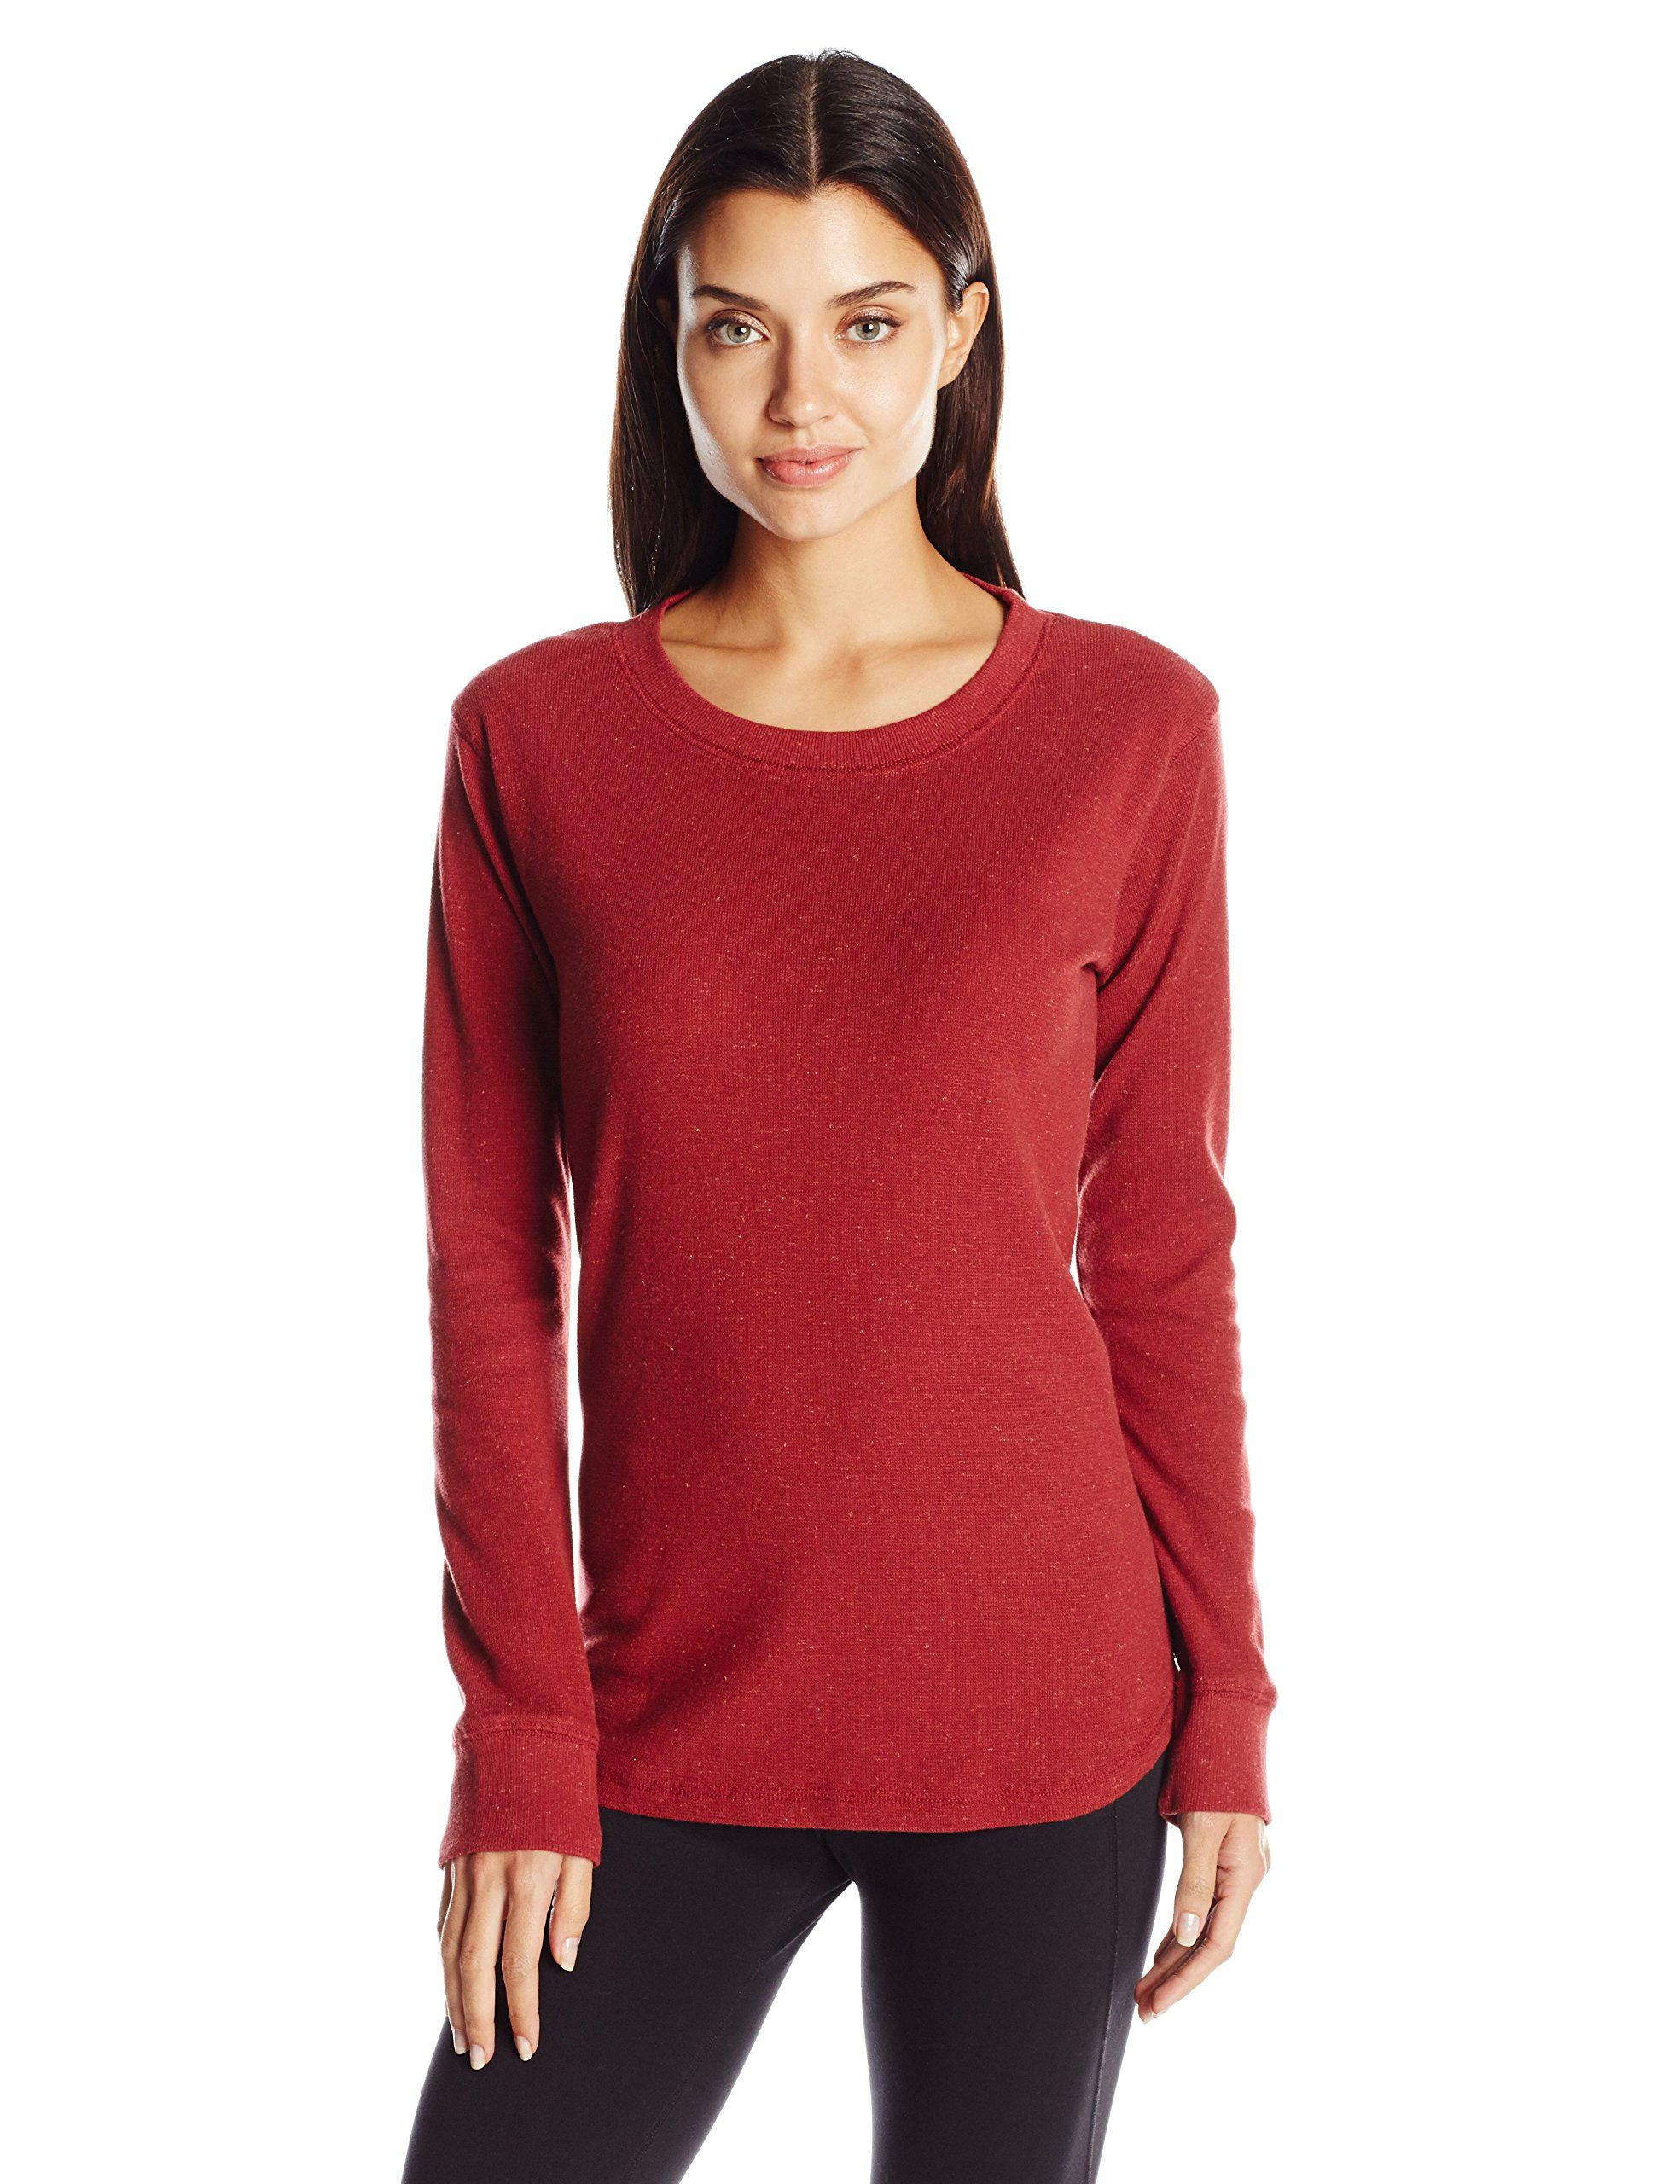 Kavu women 39 s juno sweater brick large semi fitted long for Crew neck sweater with collared shirt